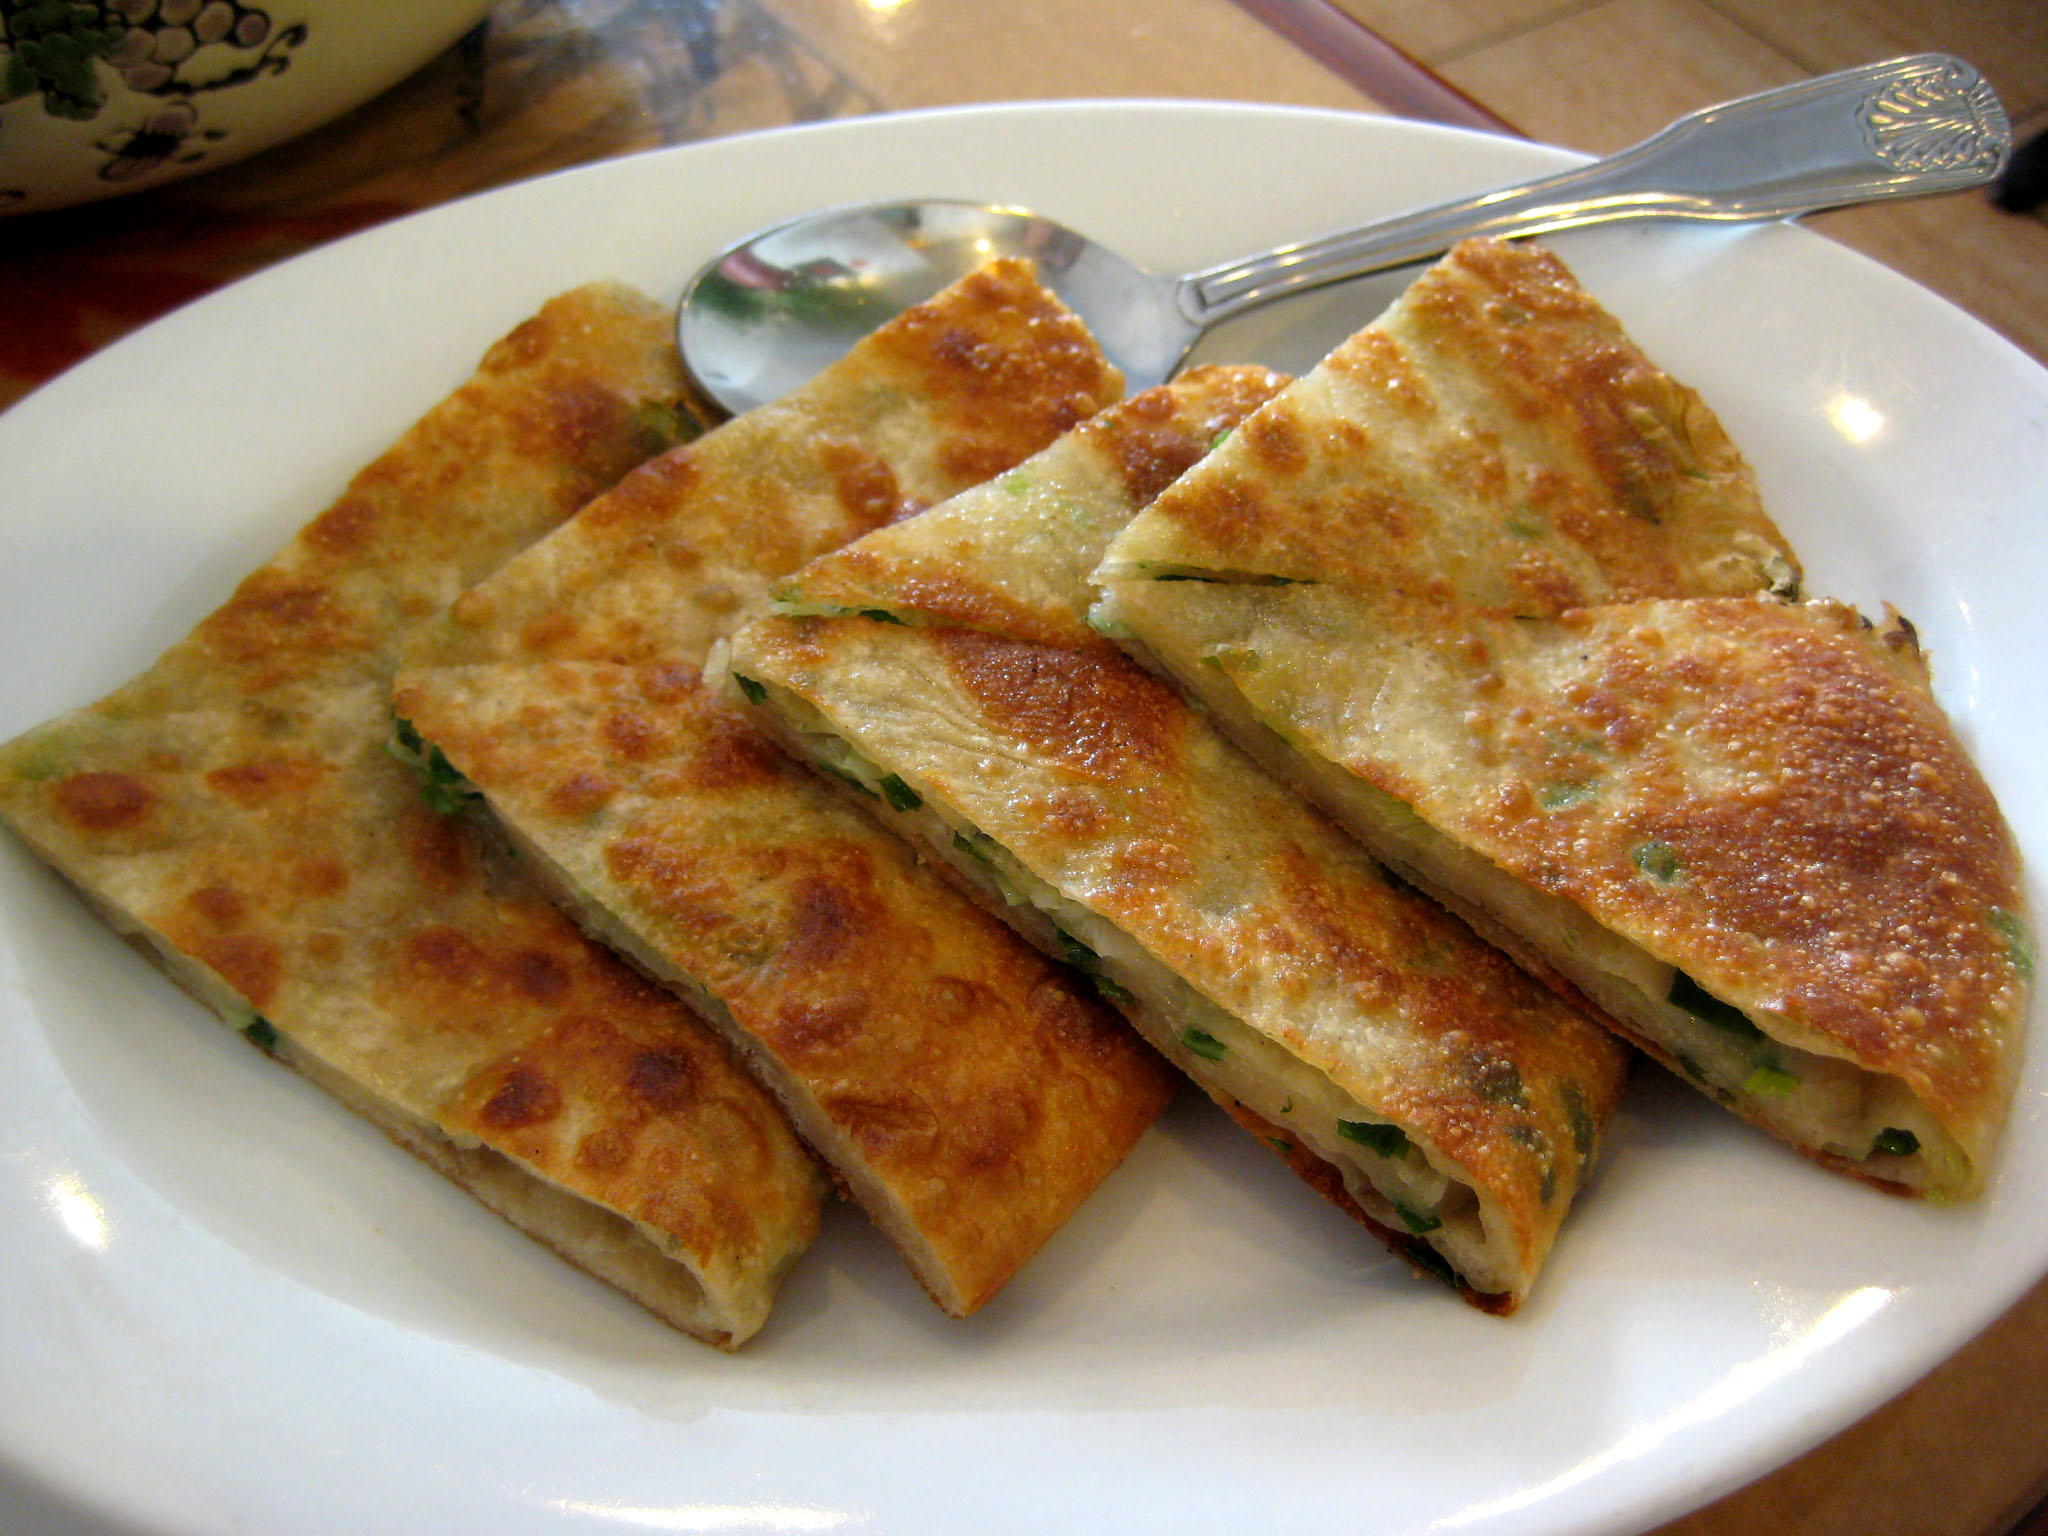 scallion pancake scallion pancakes 3 jpg extra flaky scallion scallion ...